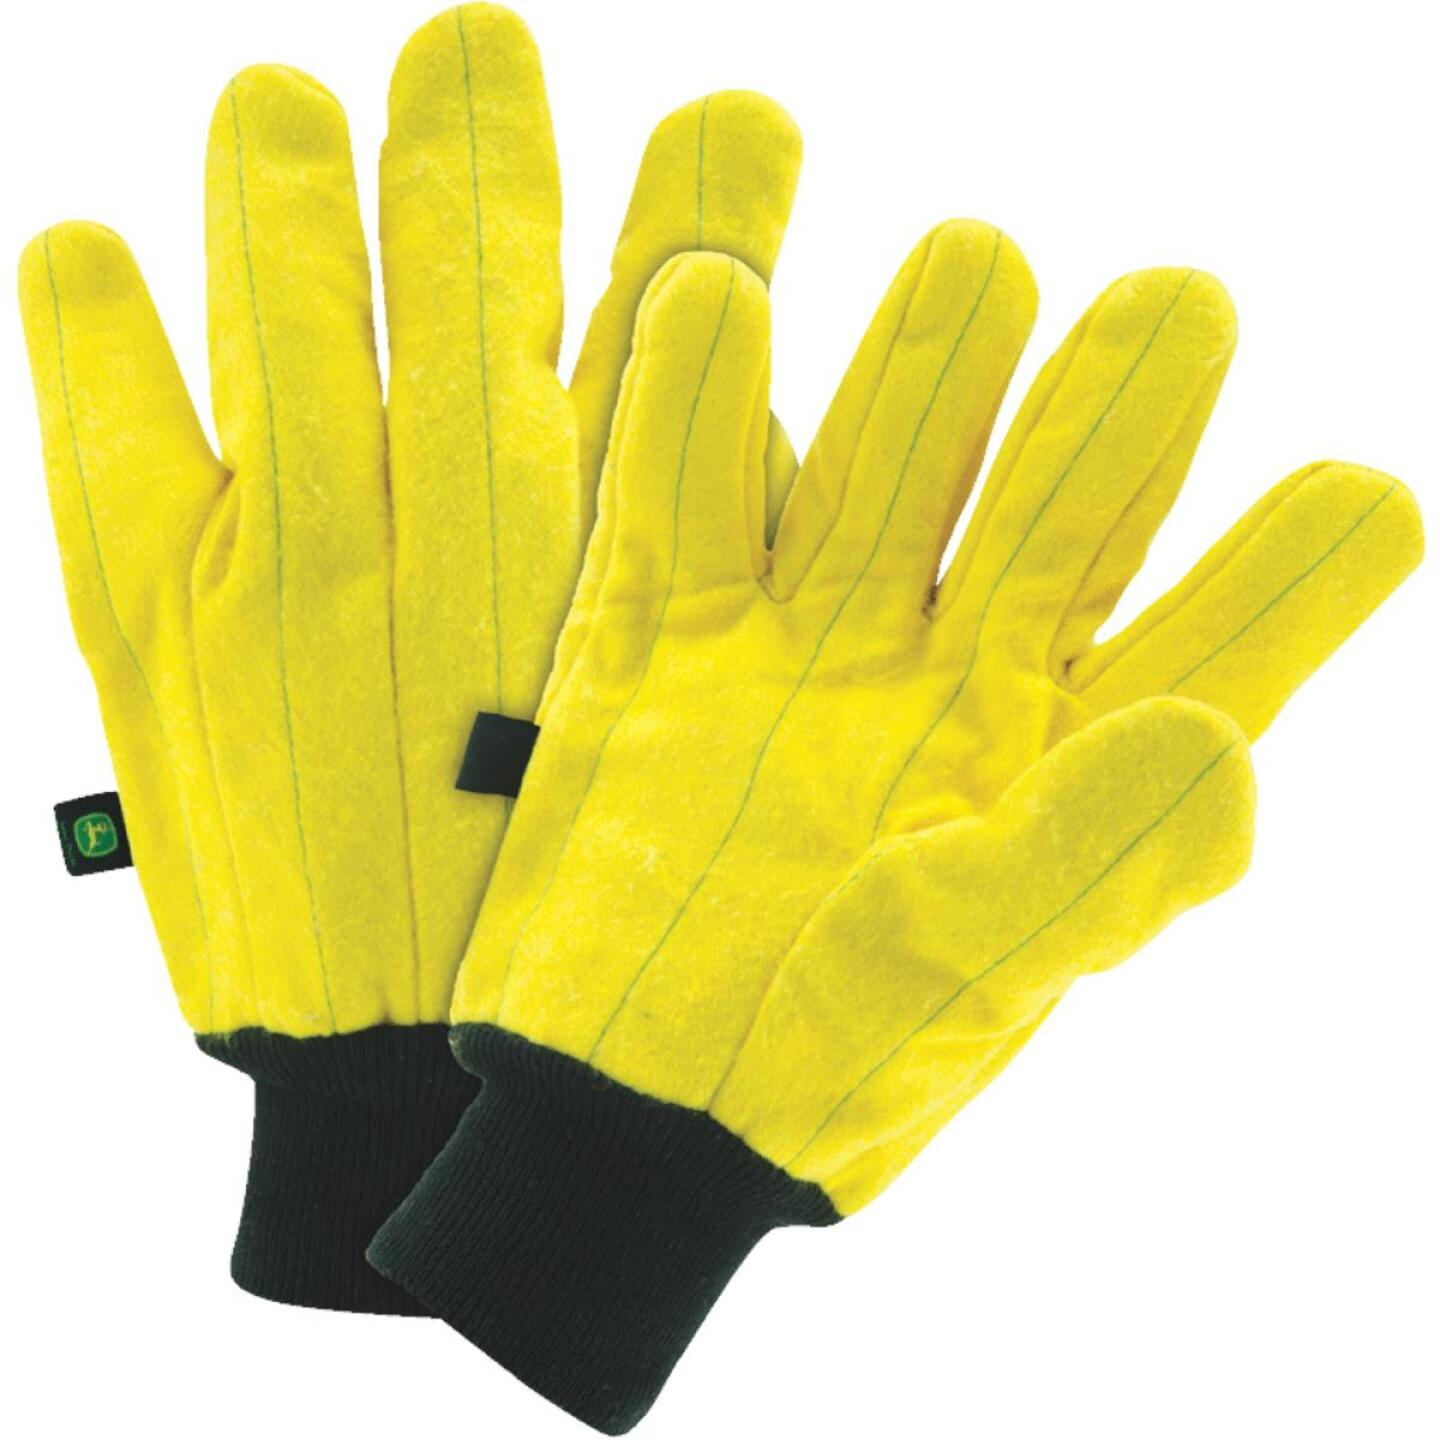 West Chester John Deere Men's XL Heavy-Duty Winter Glove Image 1